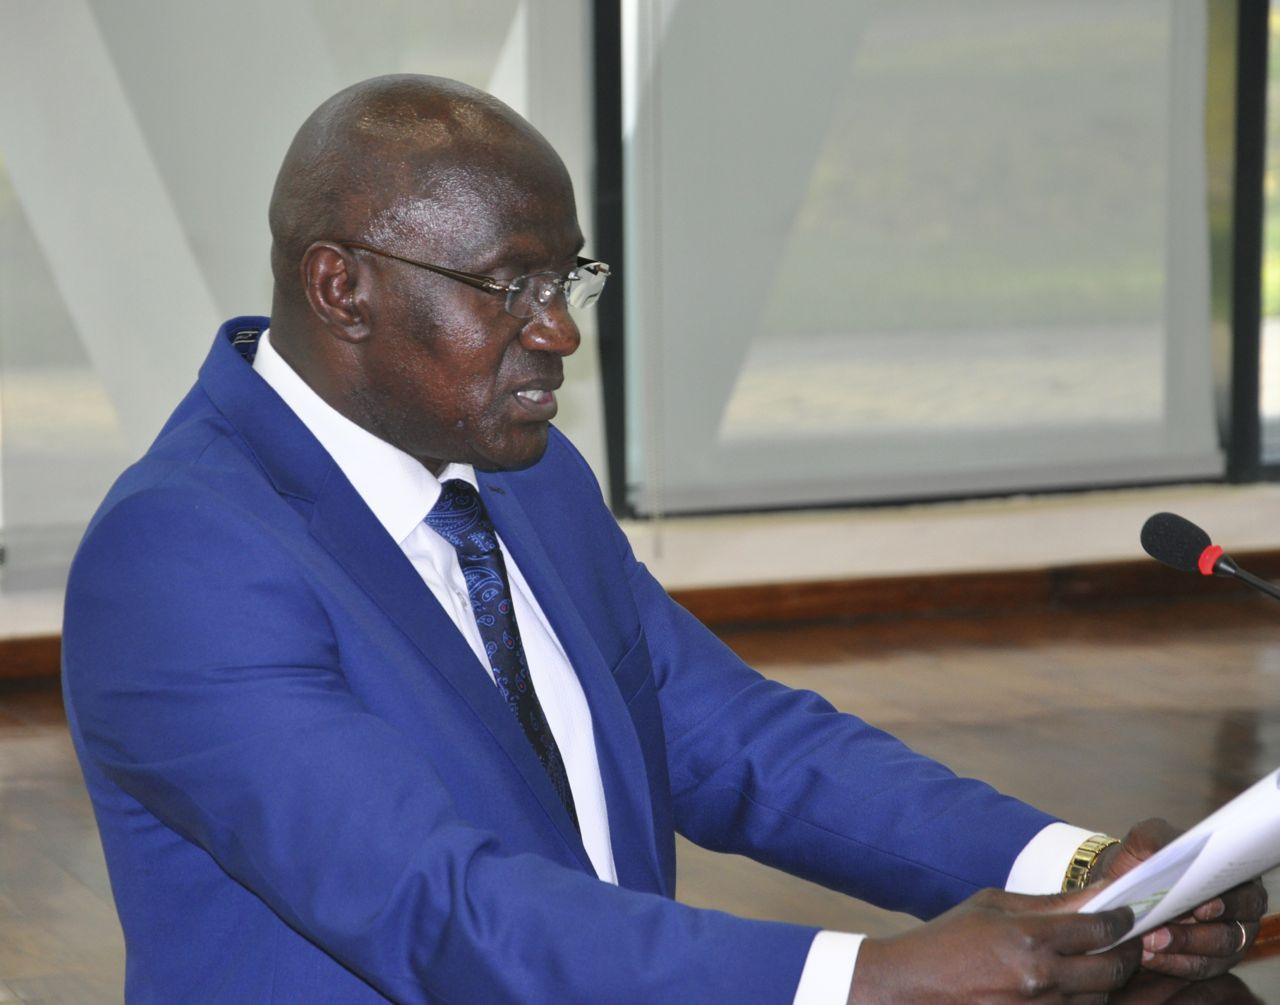 The Chair of the Committee on Accounts, Hon Jeremie Ngendakumana presents the report of the Committee on the Audited Accounts for the period ended 30th June 2015 to the House